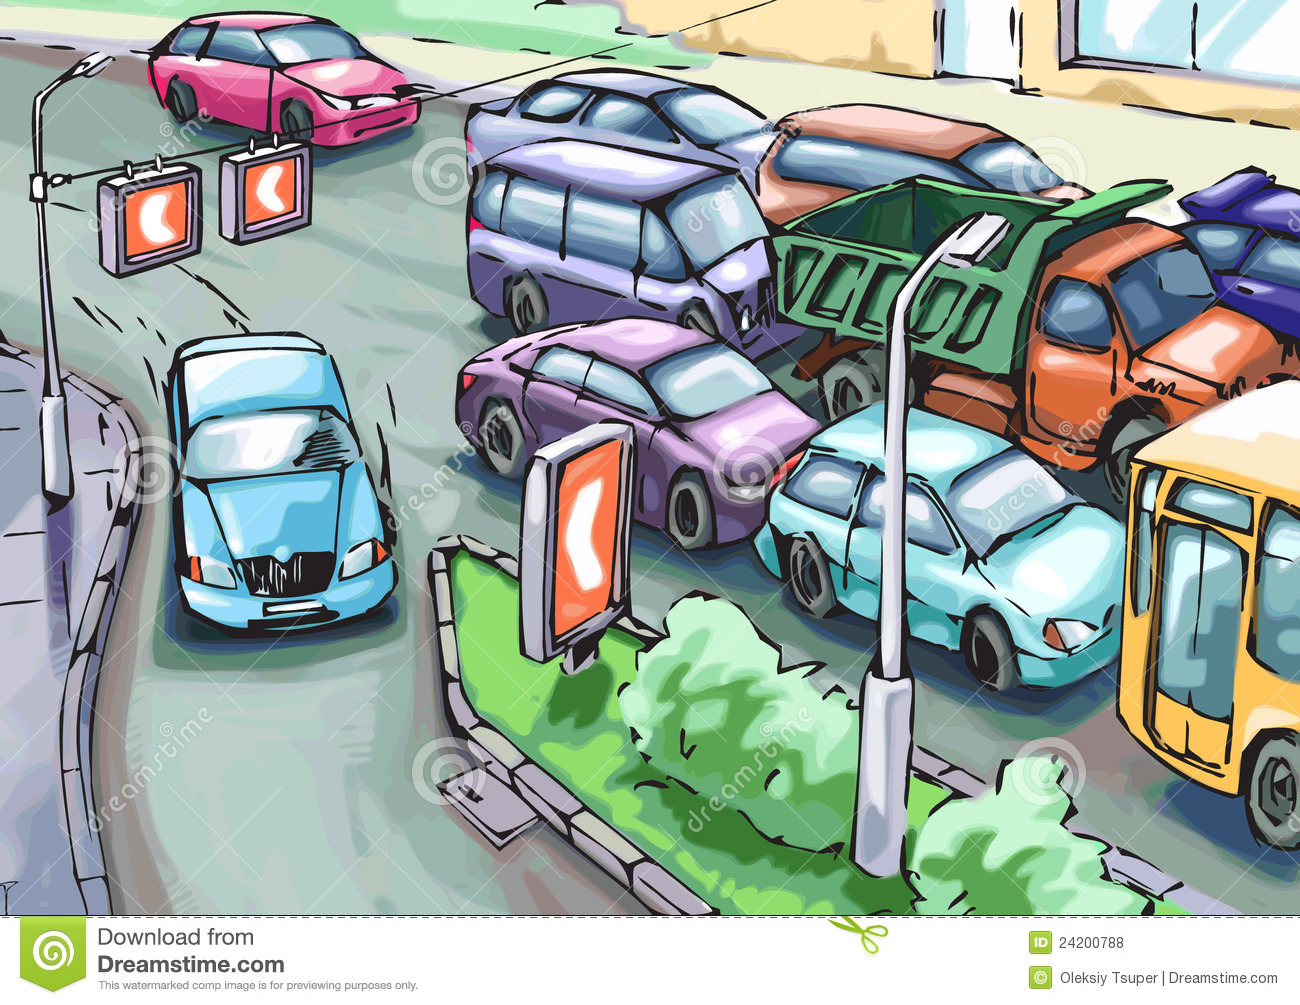 Back Gallery For Traffic Jam Clip Art Fr-Back Gallery For Traffic Jam Clip Art Free-0